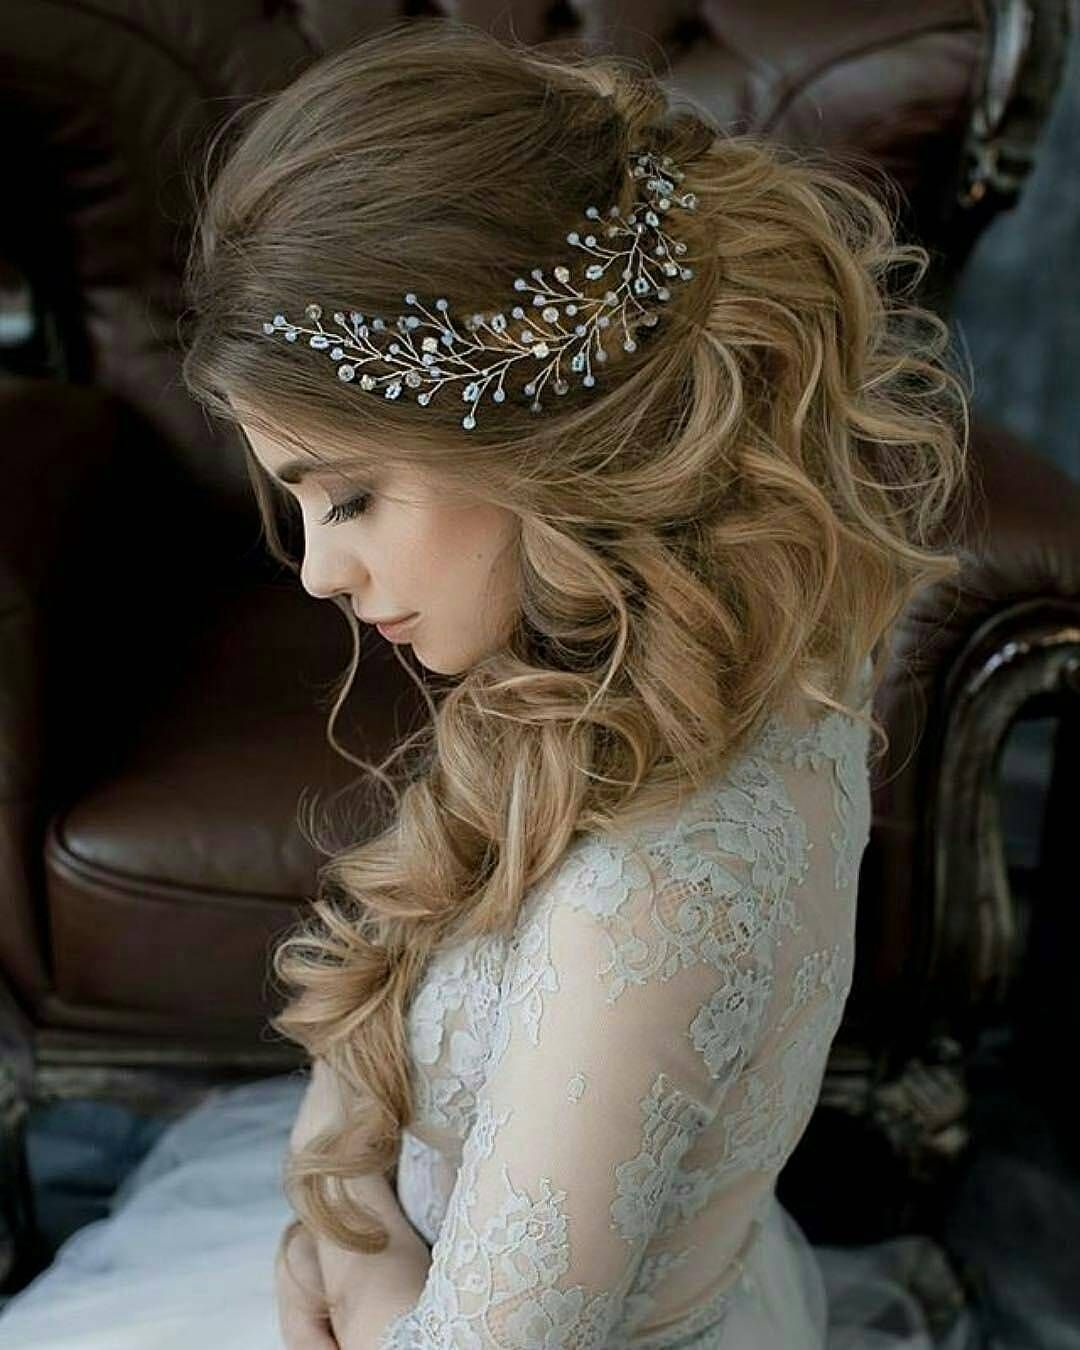 23 Romantic Wedding Hairstyles For Long Hair: 10 Lavish Wedding Hairstyles For Long Hair